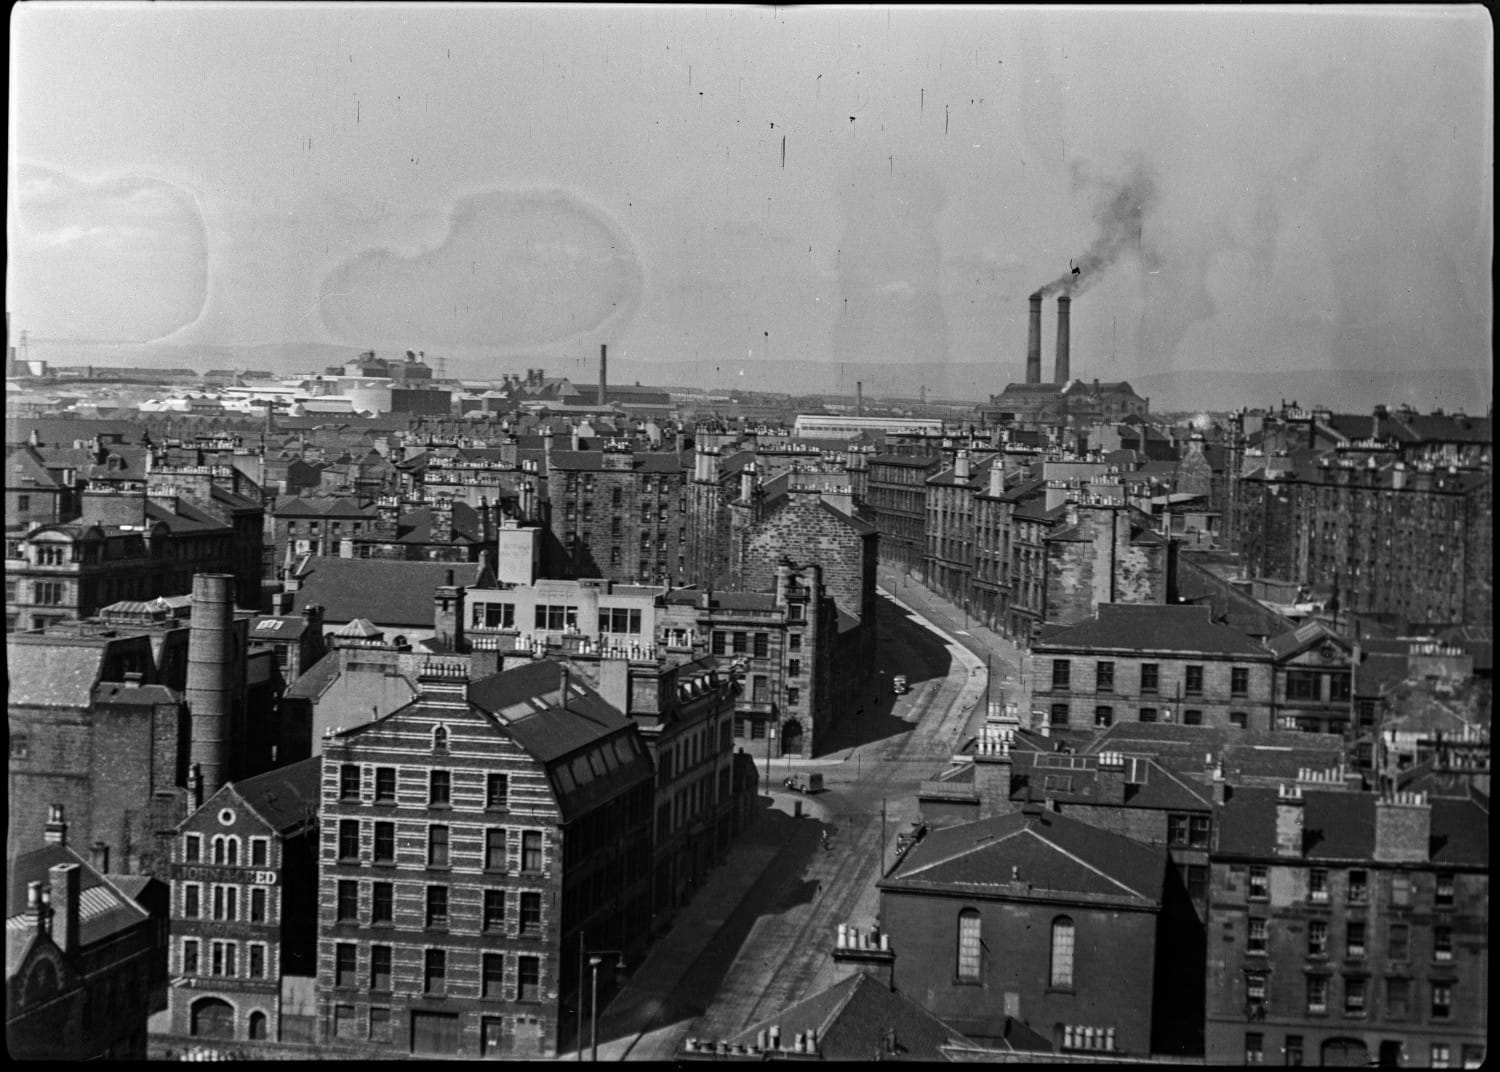 Looking north from the roof of the City Chambers